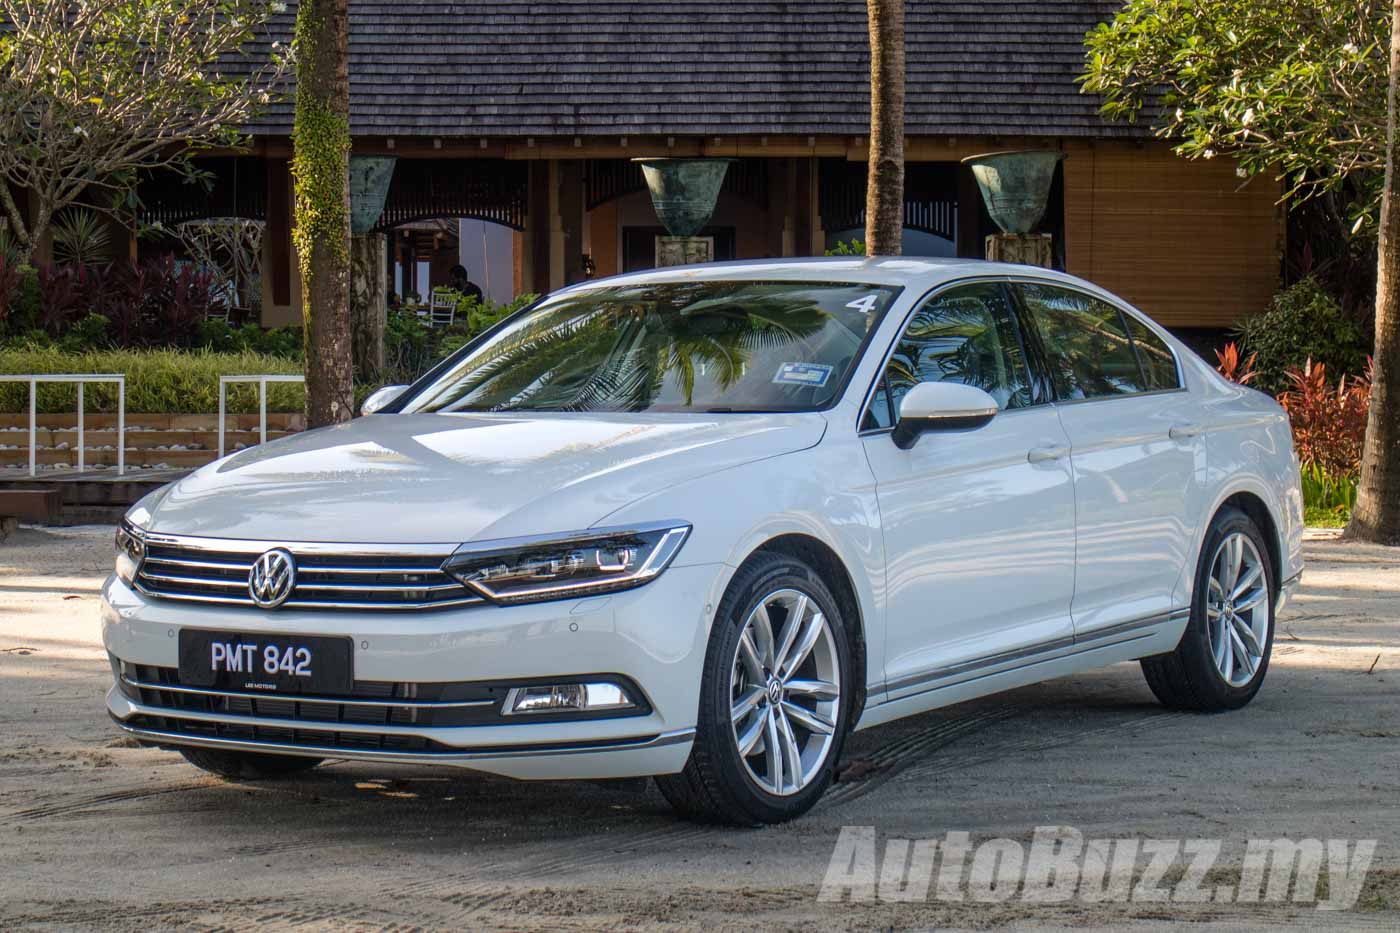 Review Volkswagen Passat B8, Exciting In Every Way